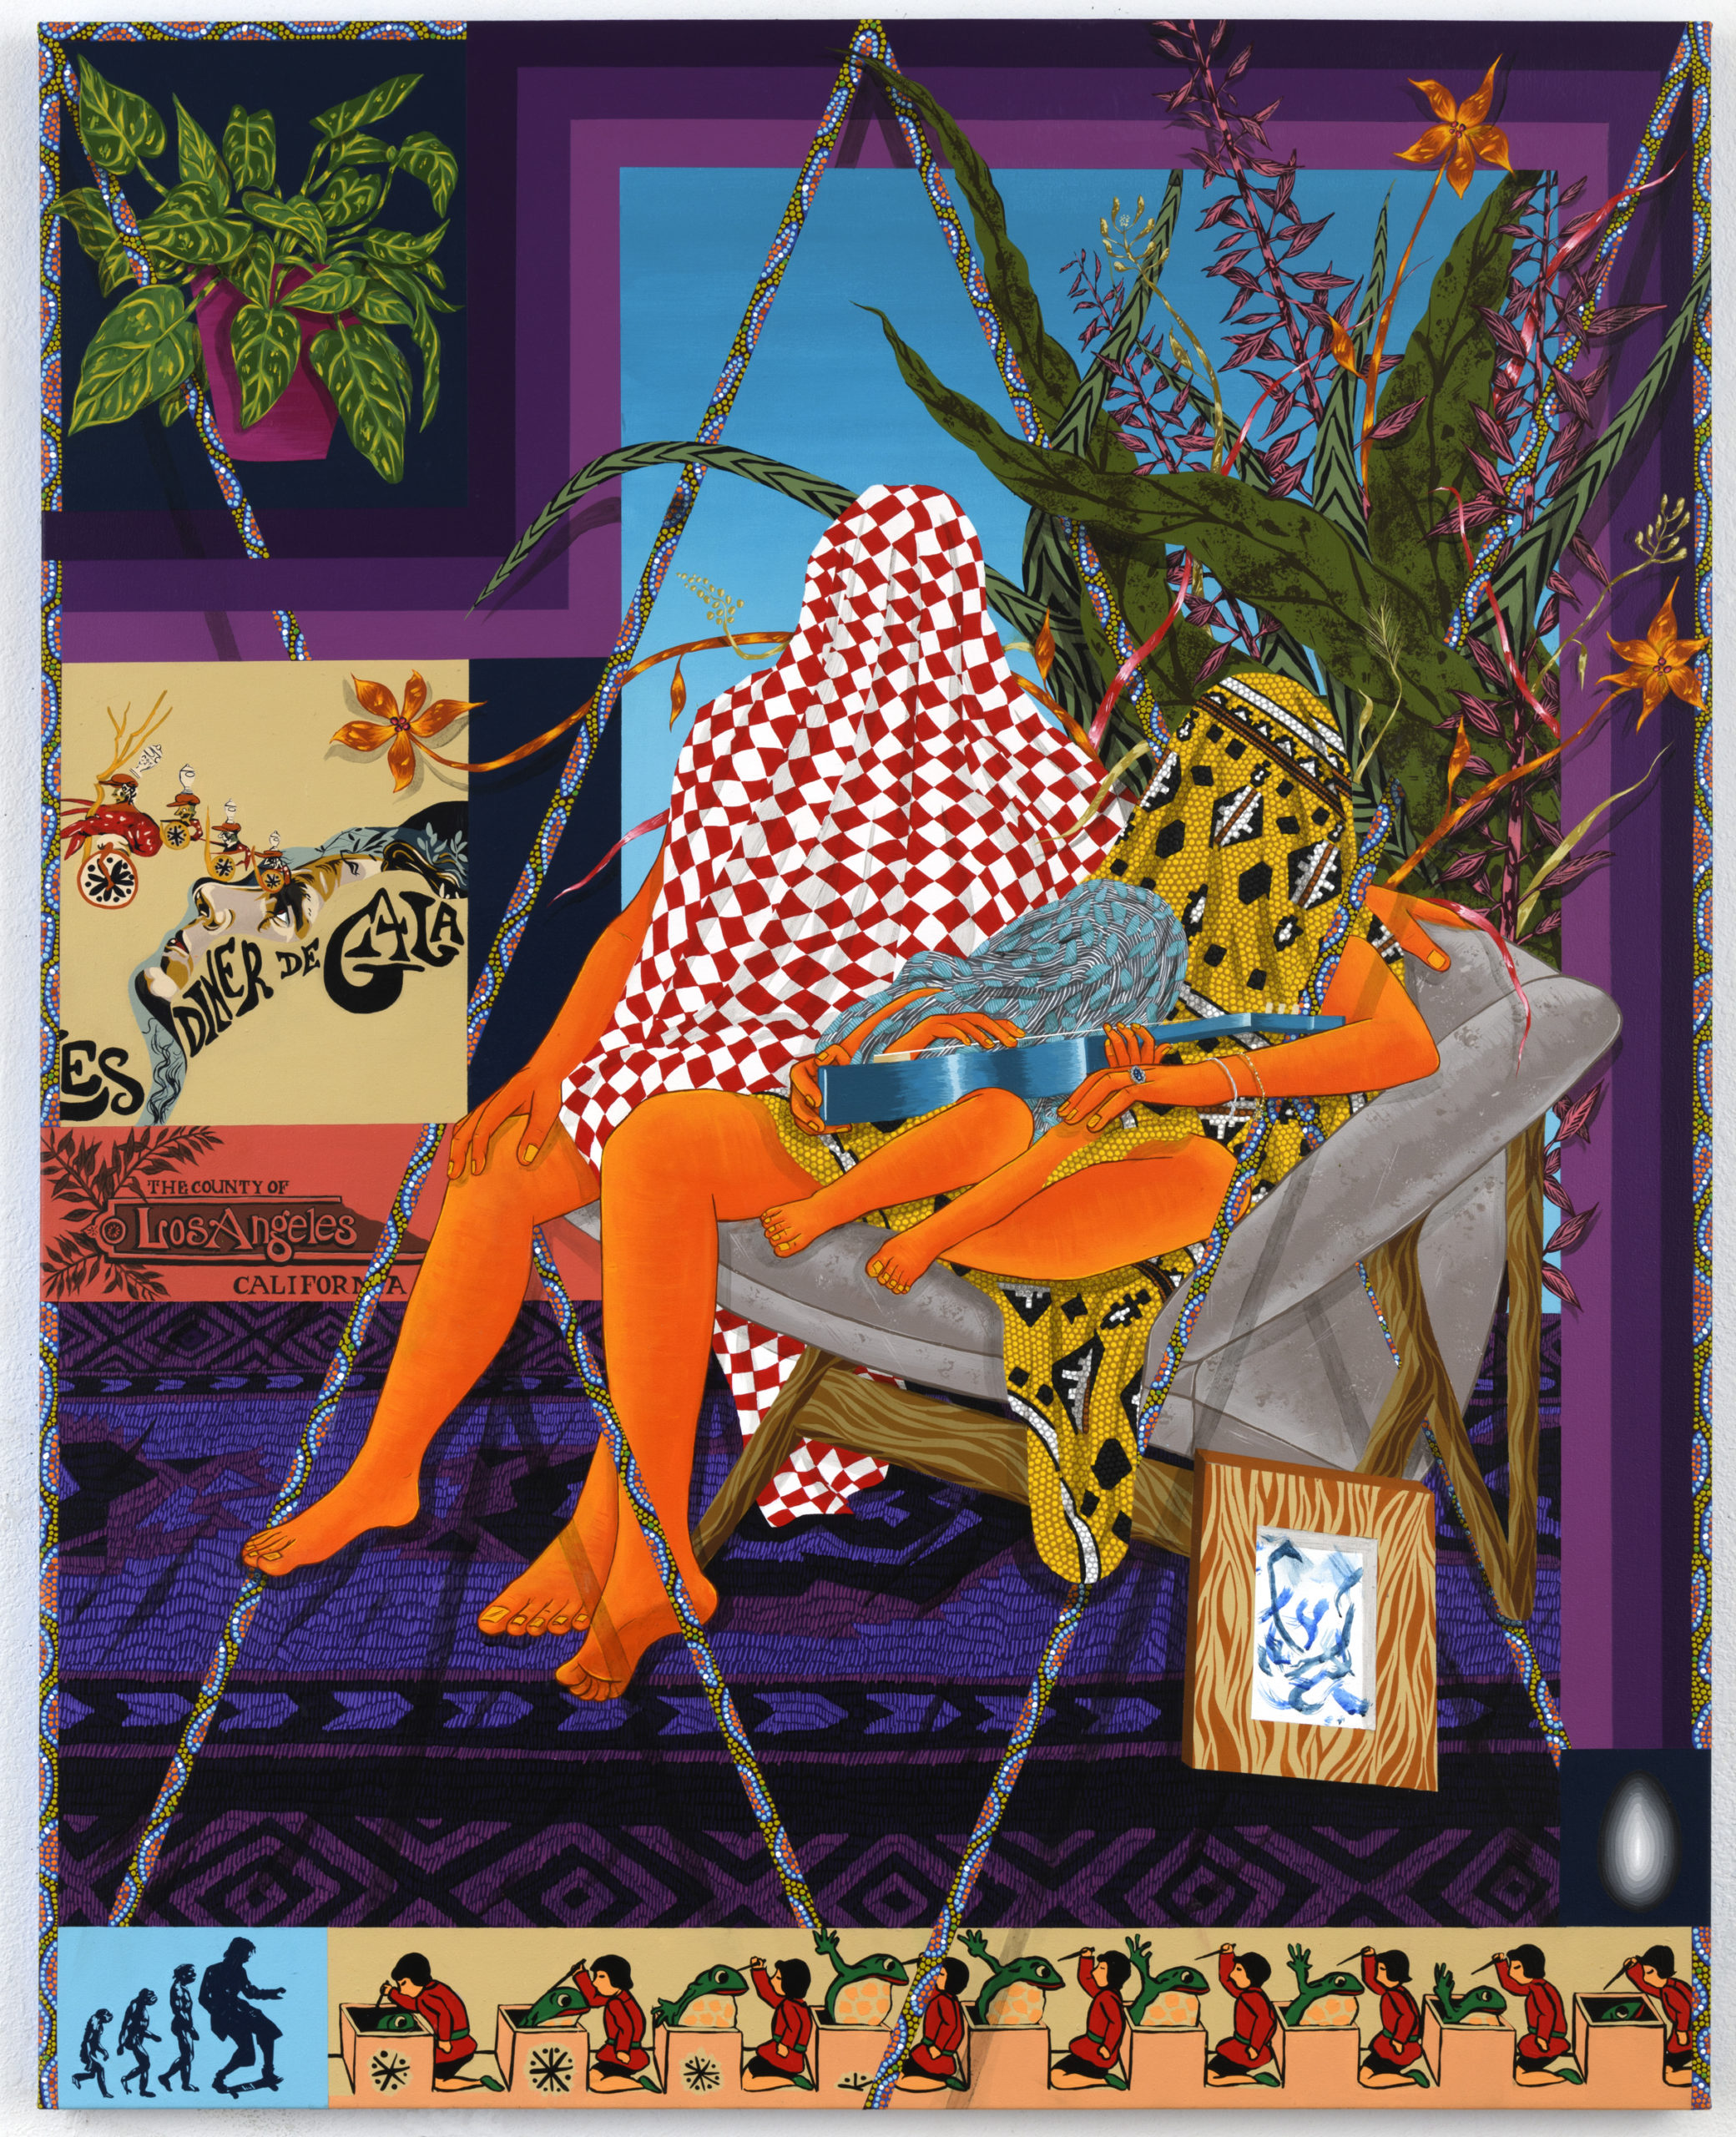 This artwork by the artist Amir H. Fallah is a large rectangular painting depicting two adults and one child with their faces covered by various patterned fabric and with orange skin. The adult male figure has a red and white checkered fabric, the female adult figure has a yellow, black and white geometric patterned fabric, and the child figure (sitting in the lap of the female adult figure) has a blue and grey patterned fabric. The child figure is also holding a blue guitar. These three figures are sitting on a grey armchair and situated in a living space. Behind these figures is a large green plant with orange and purple flowers and leaves. The space has a window framed by purple bands and features a bright blue sky. To the left of this window is a green plant in a red-purple planter. Beneath the planter is a poster with a floral design and the lettering